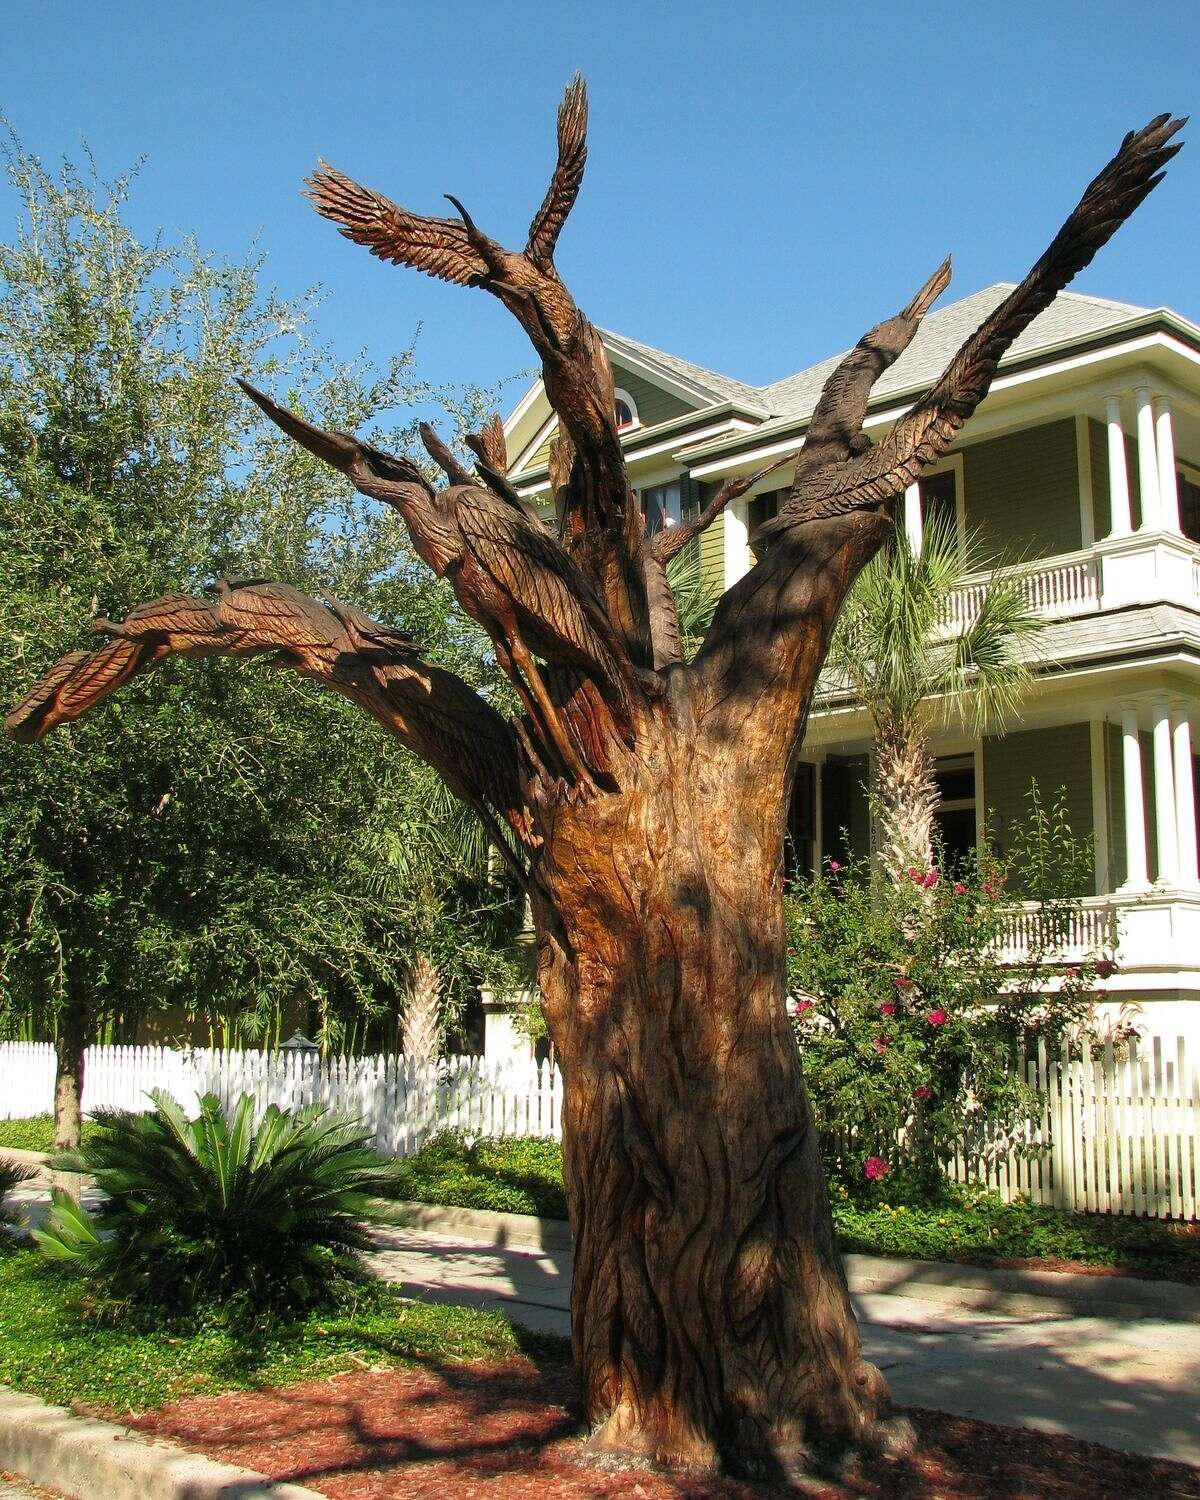 At 1620 Sealy Street, a sculpture called the Birds of Galveston rises at least 15 feet into the air. Sculptor Dale Lewis carved 17 birds straining to take flight along limbs arching in various directions.